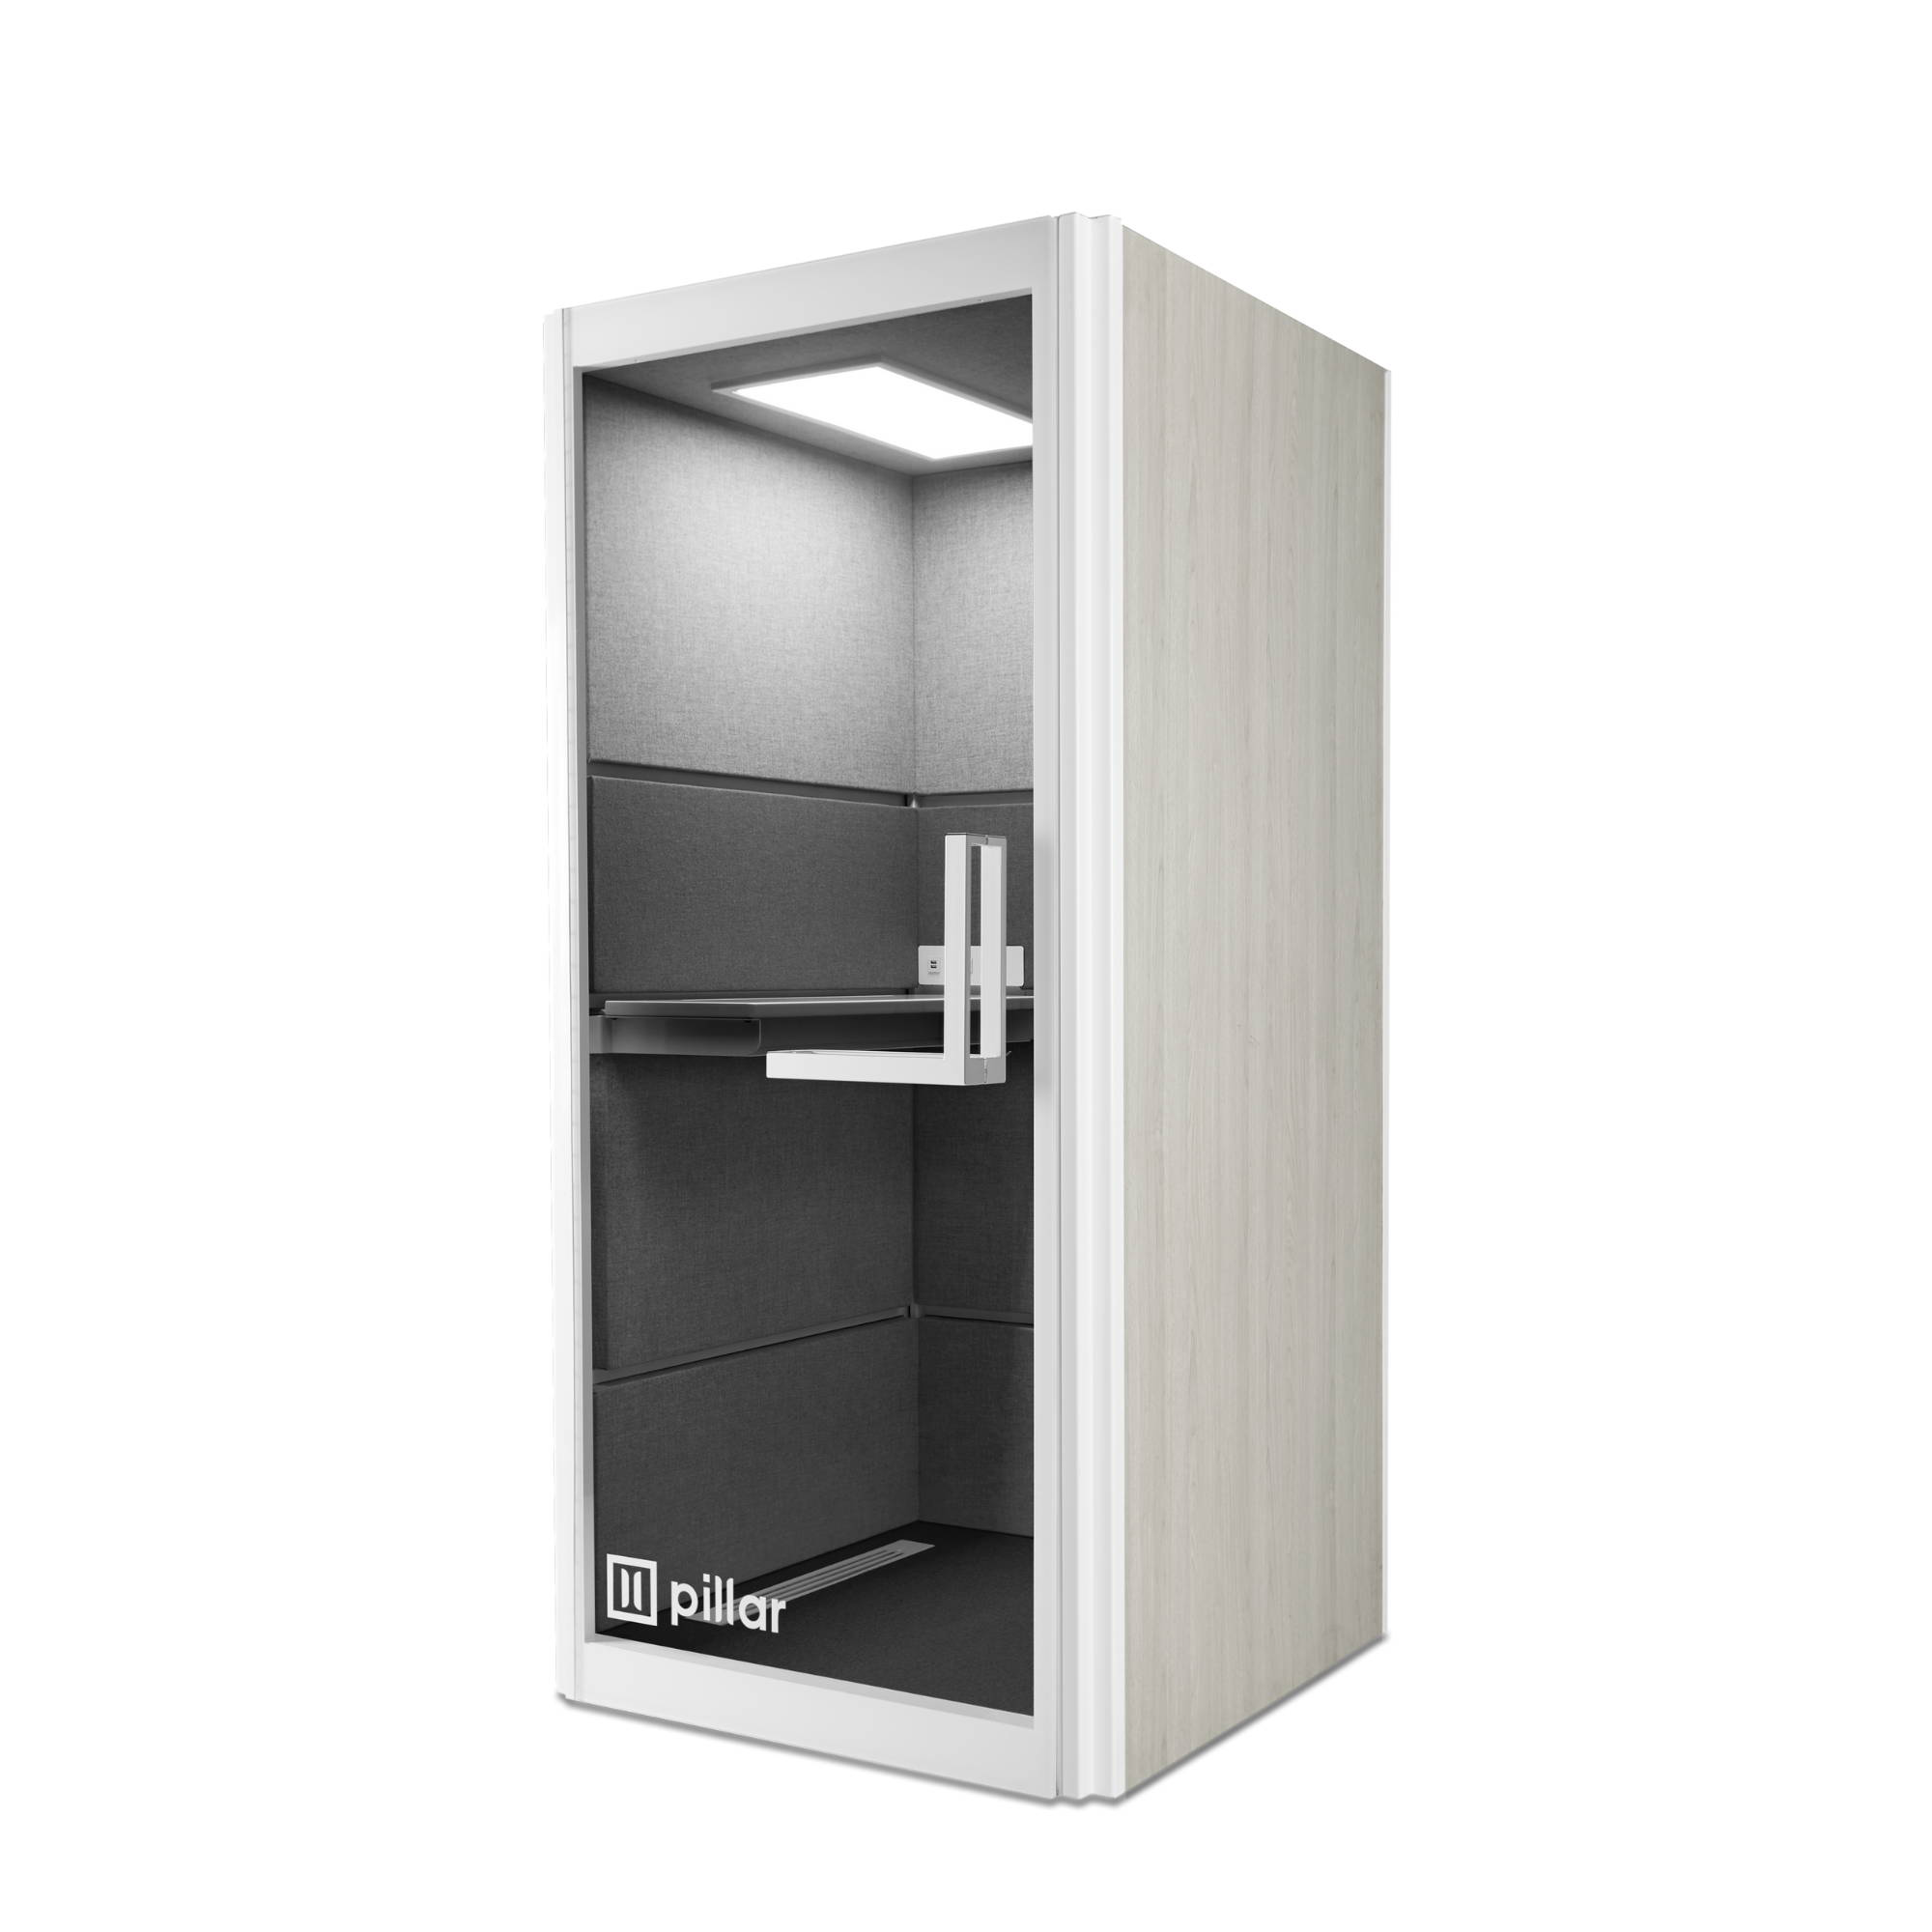 pillar booth white and grey oak